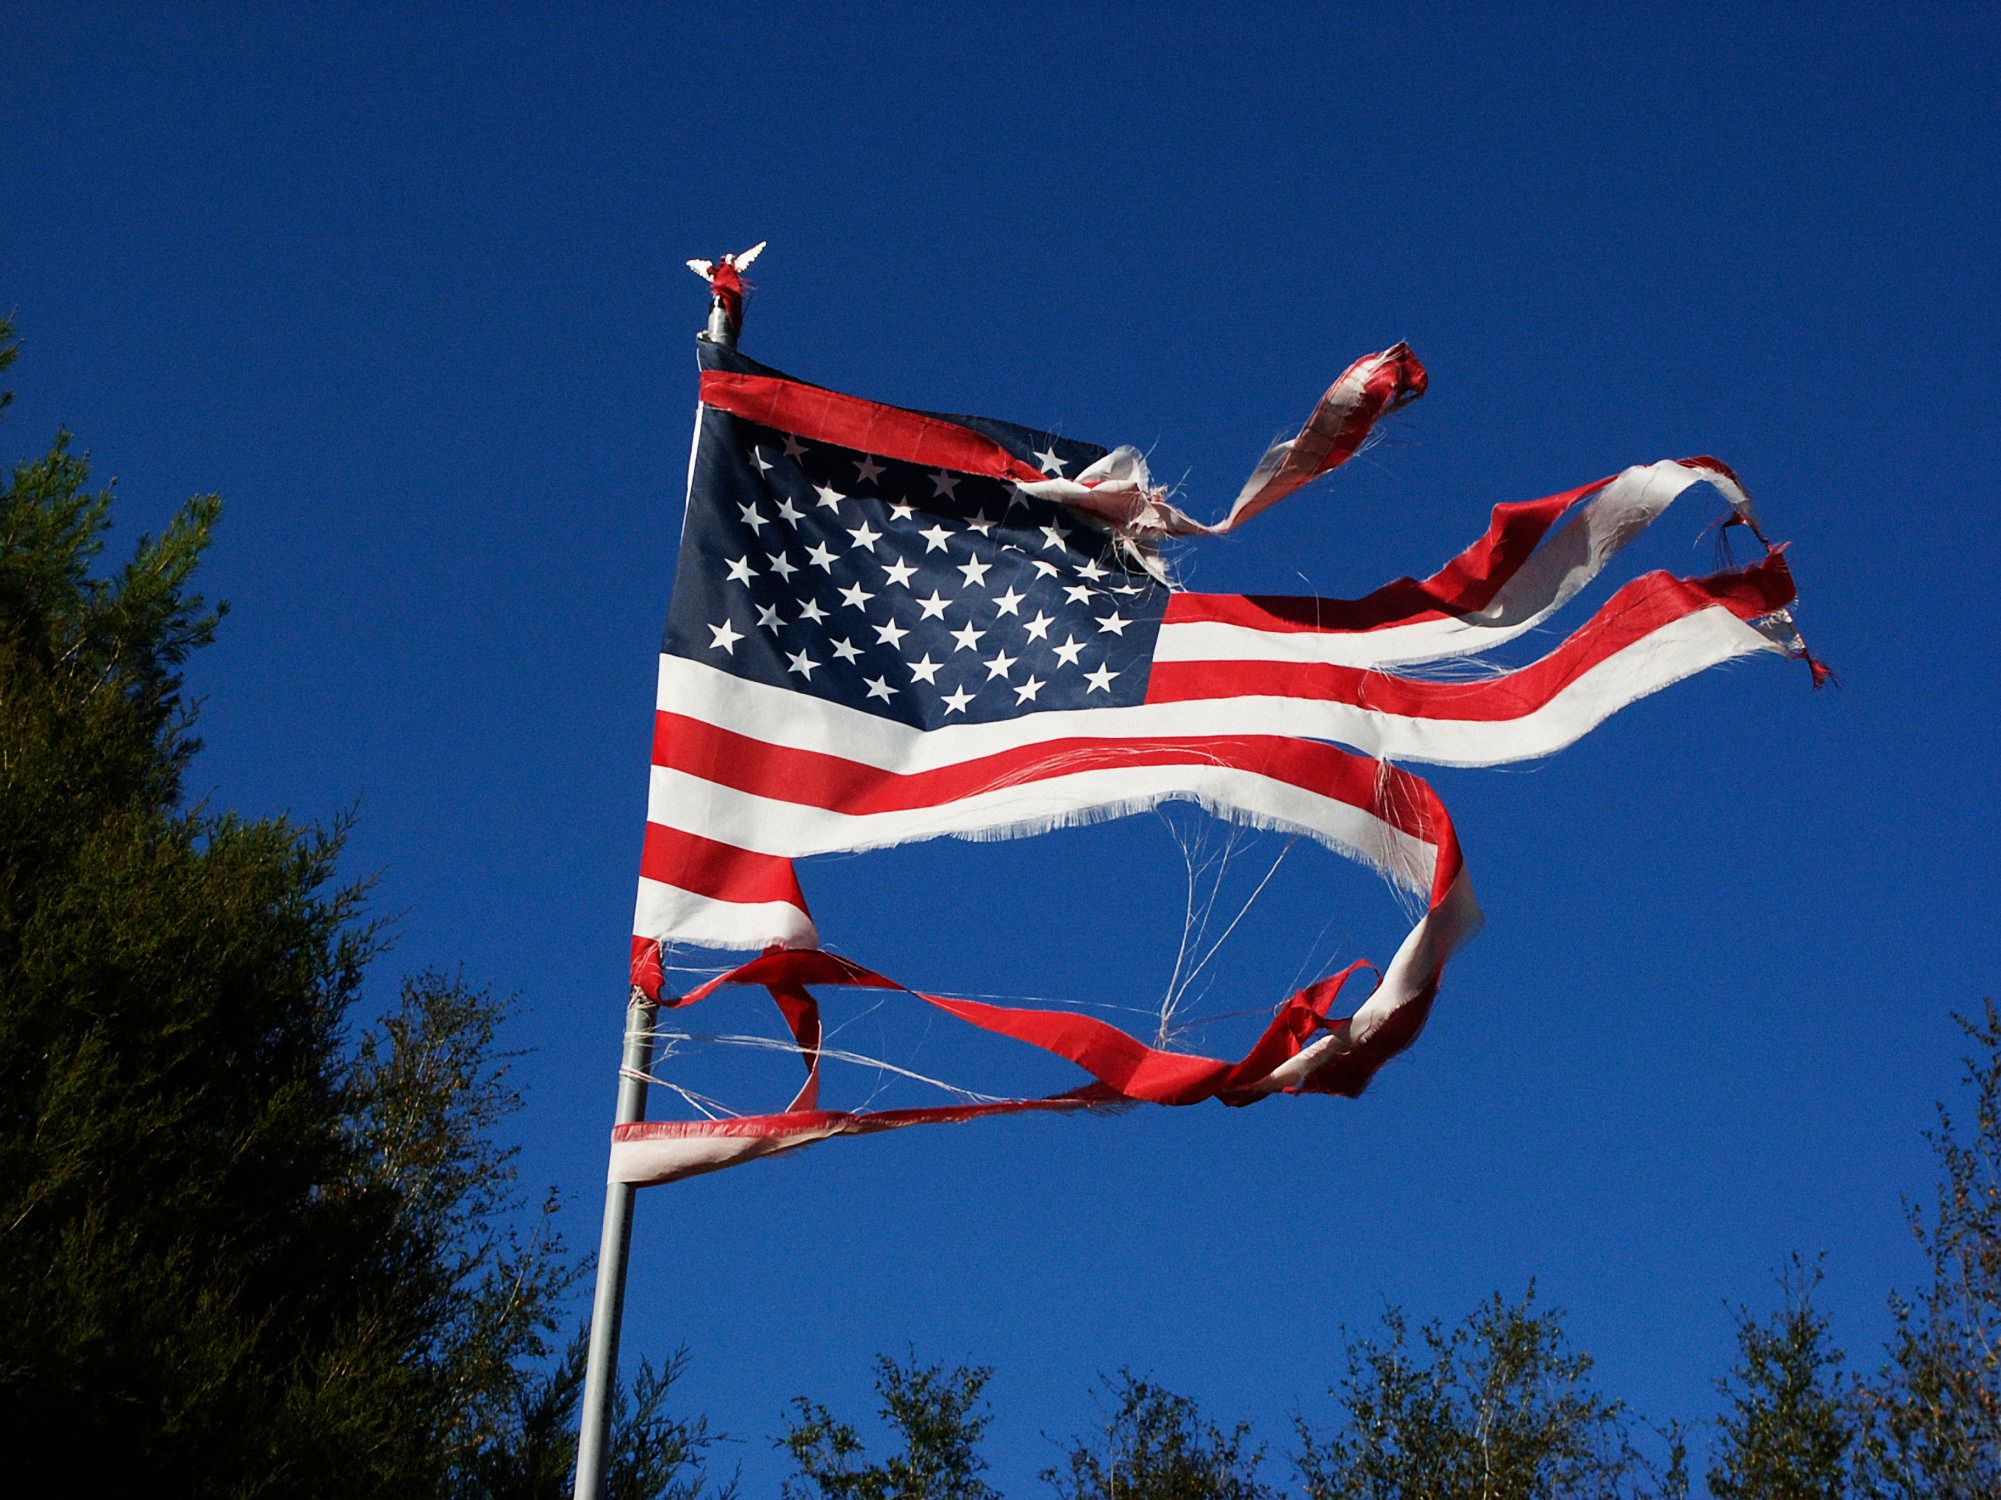 Florida, A wind battered American flag